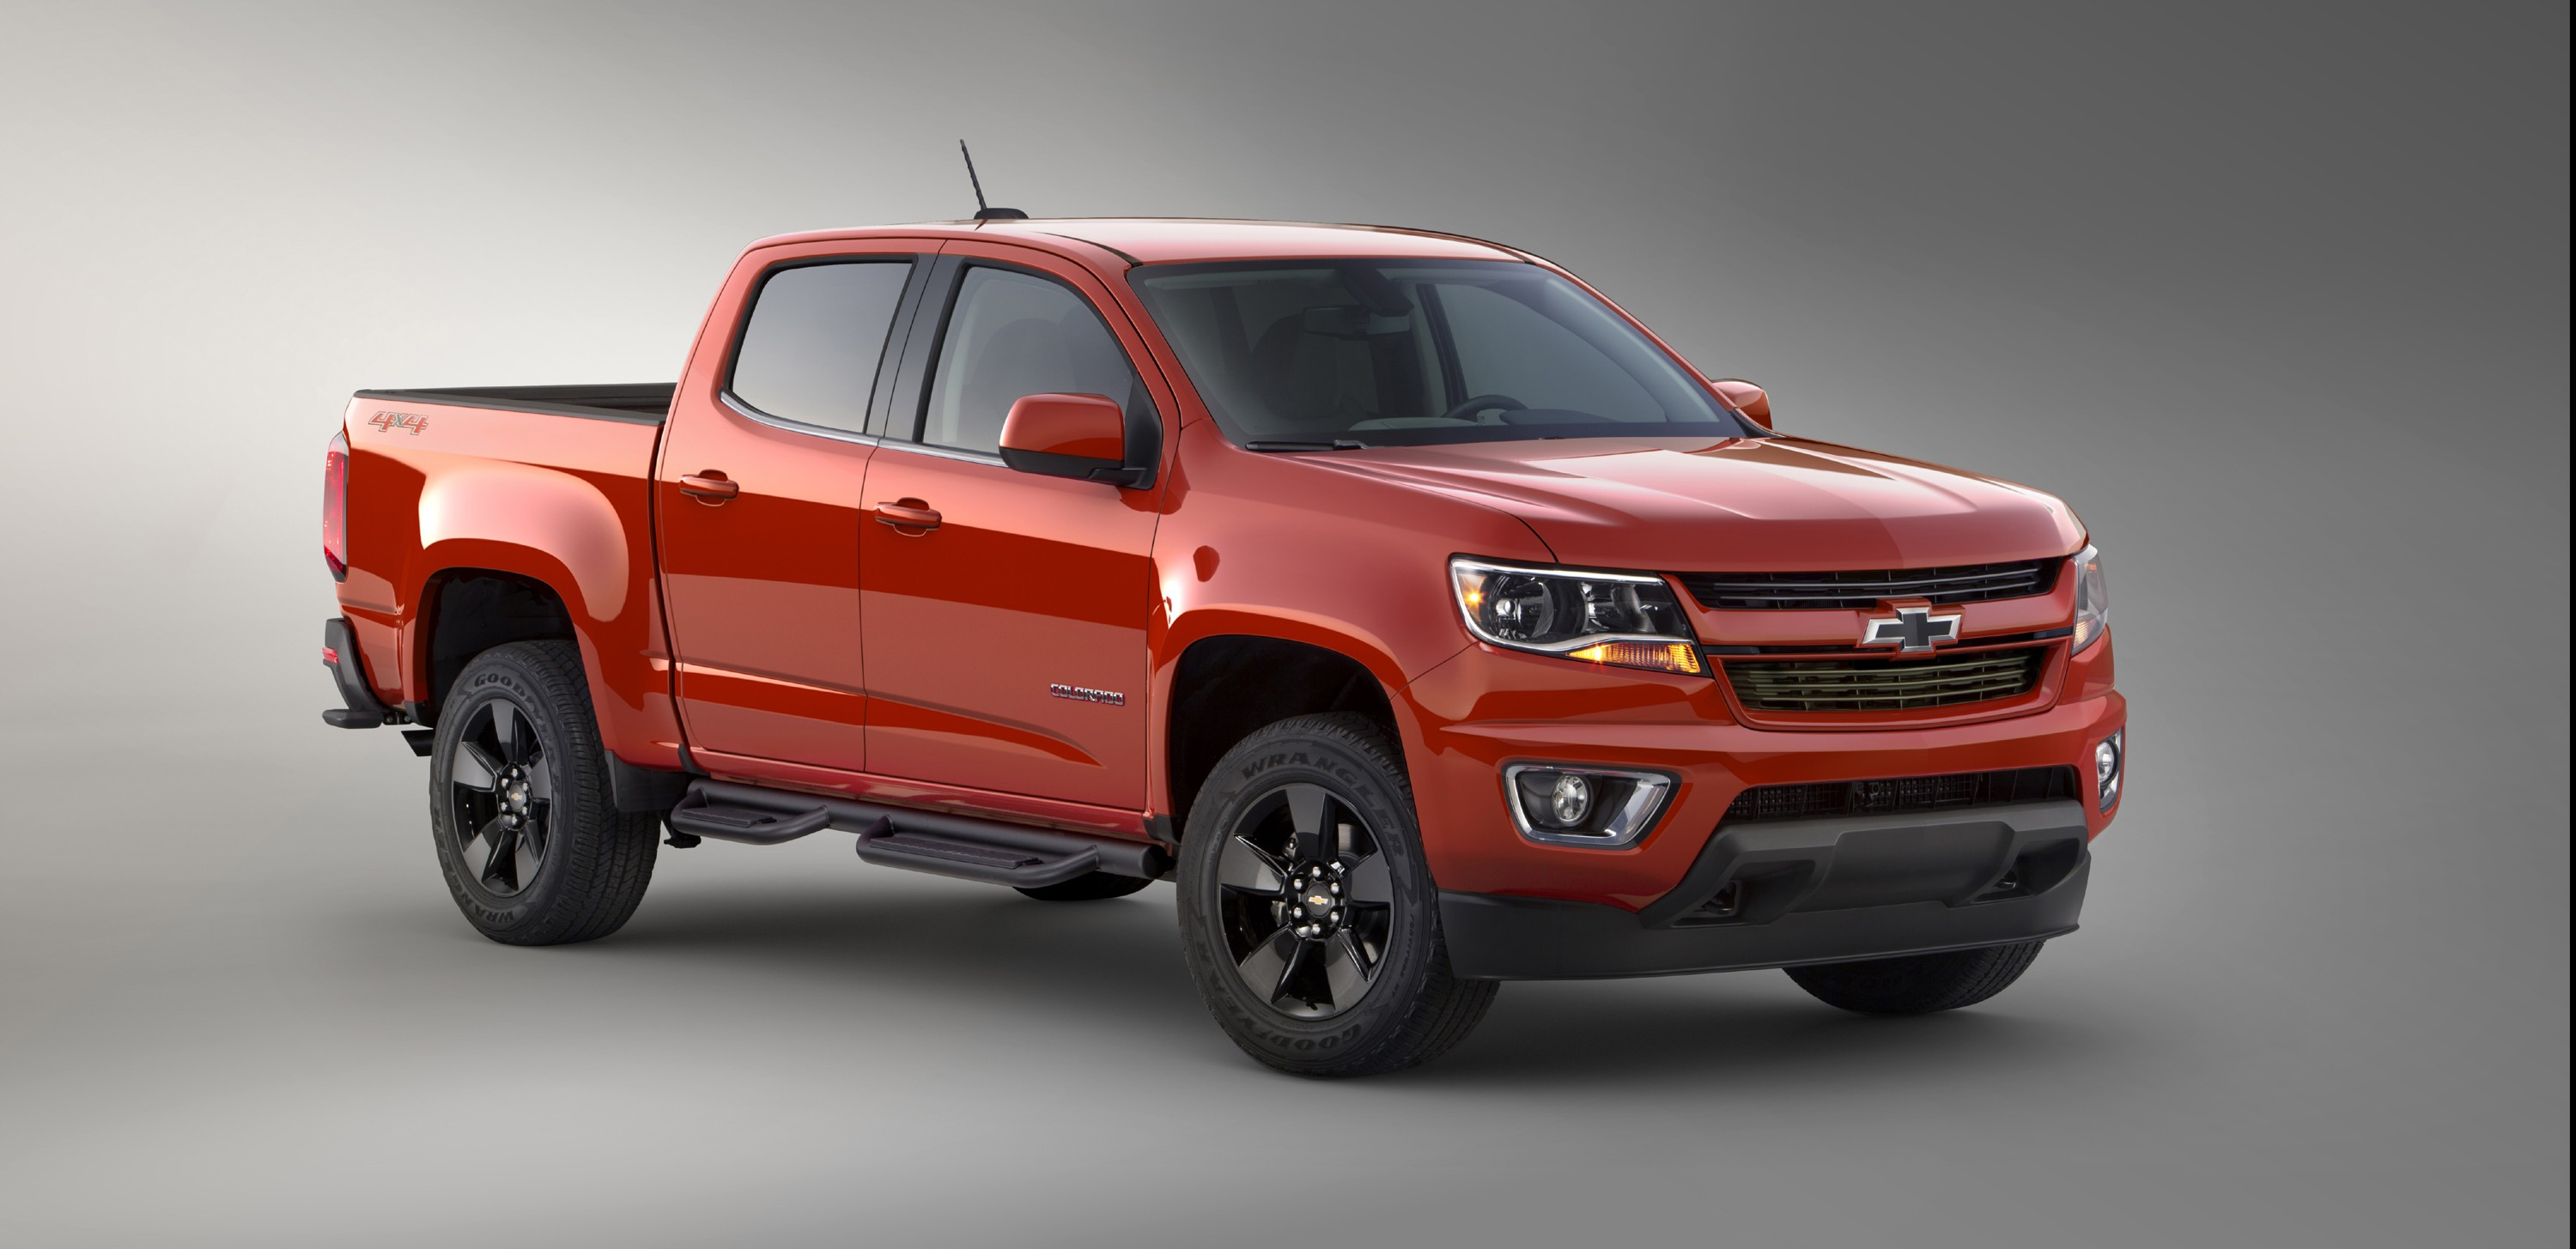 2015 chevrolet colorado gearon edition confirmed to debut at chicago. Cars Review. Best American Auto & Cars Review